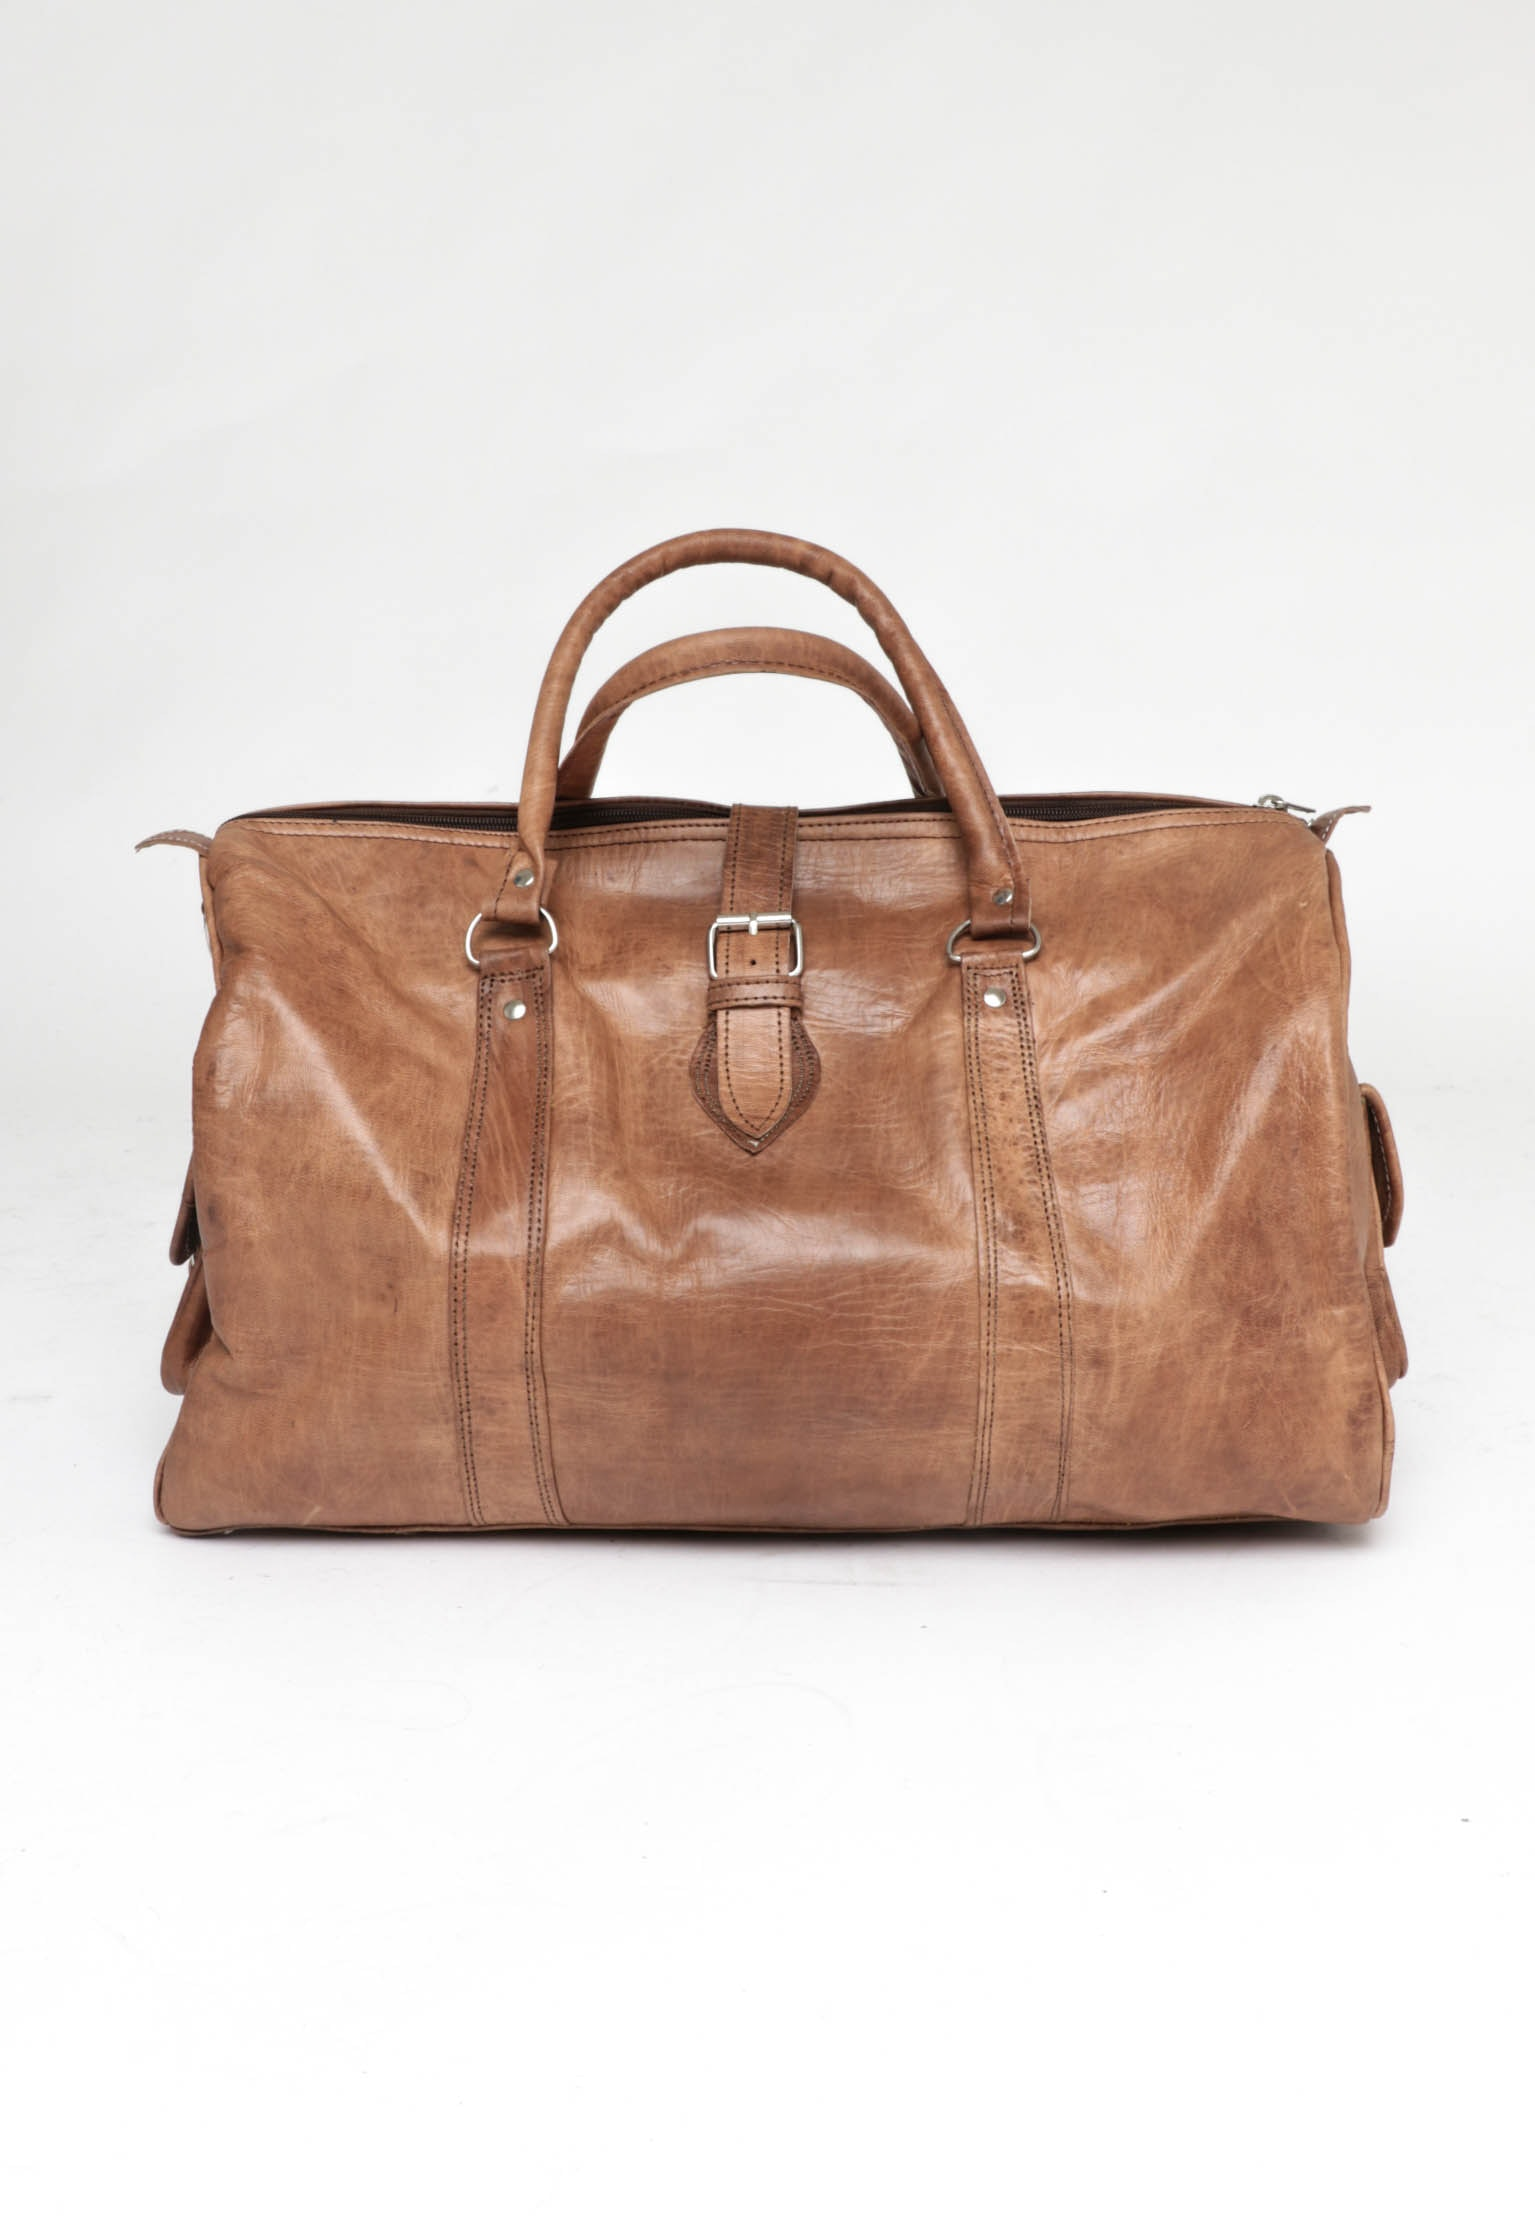 Handcrafted Genuine Leather Weekend Bag - Natural Tan